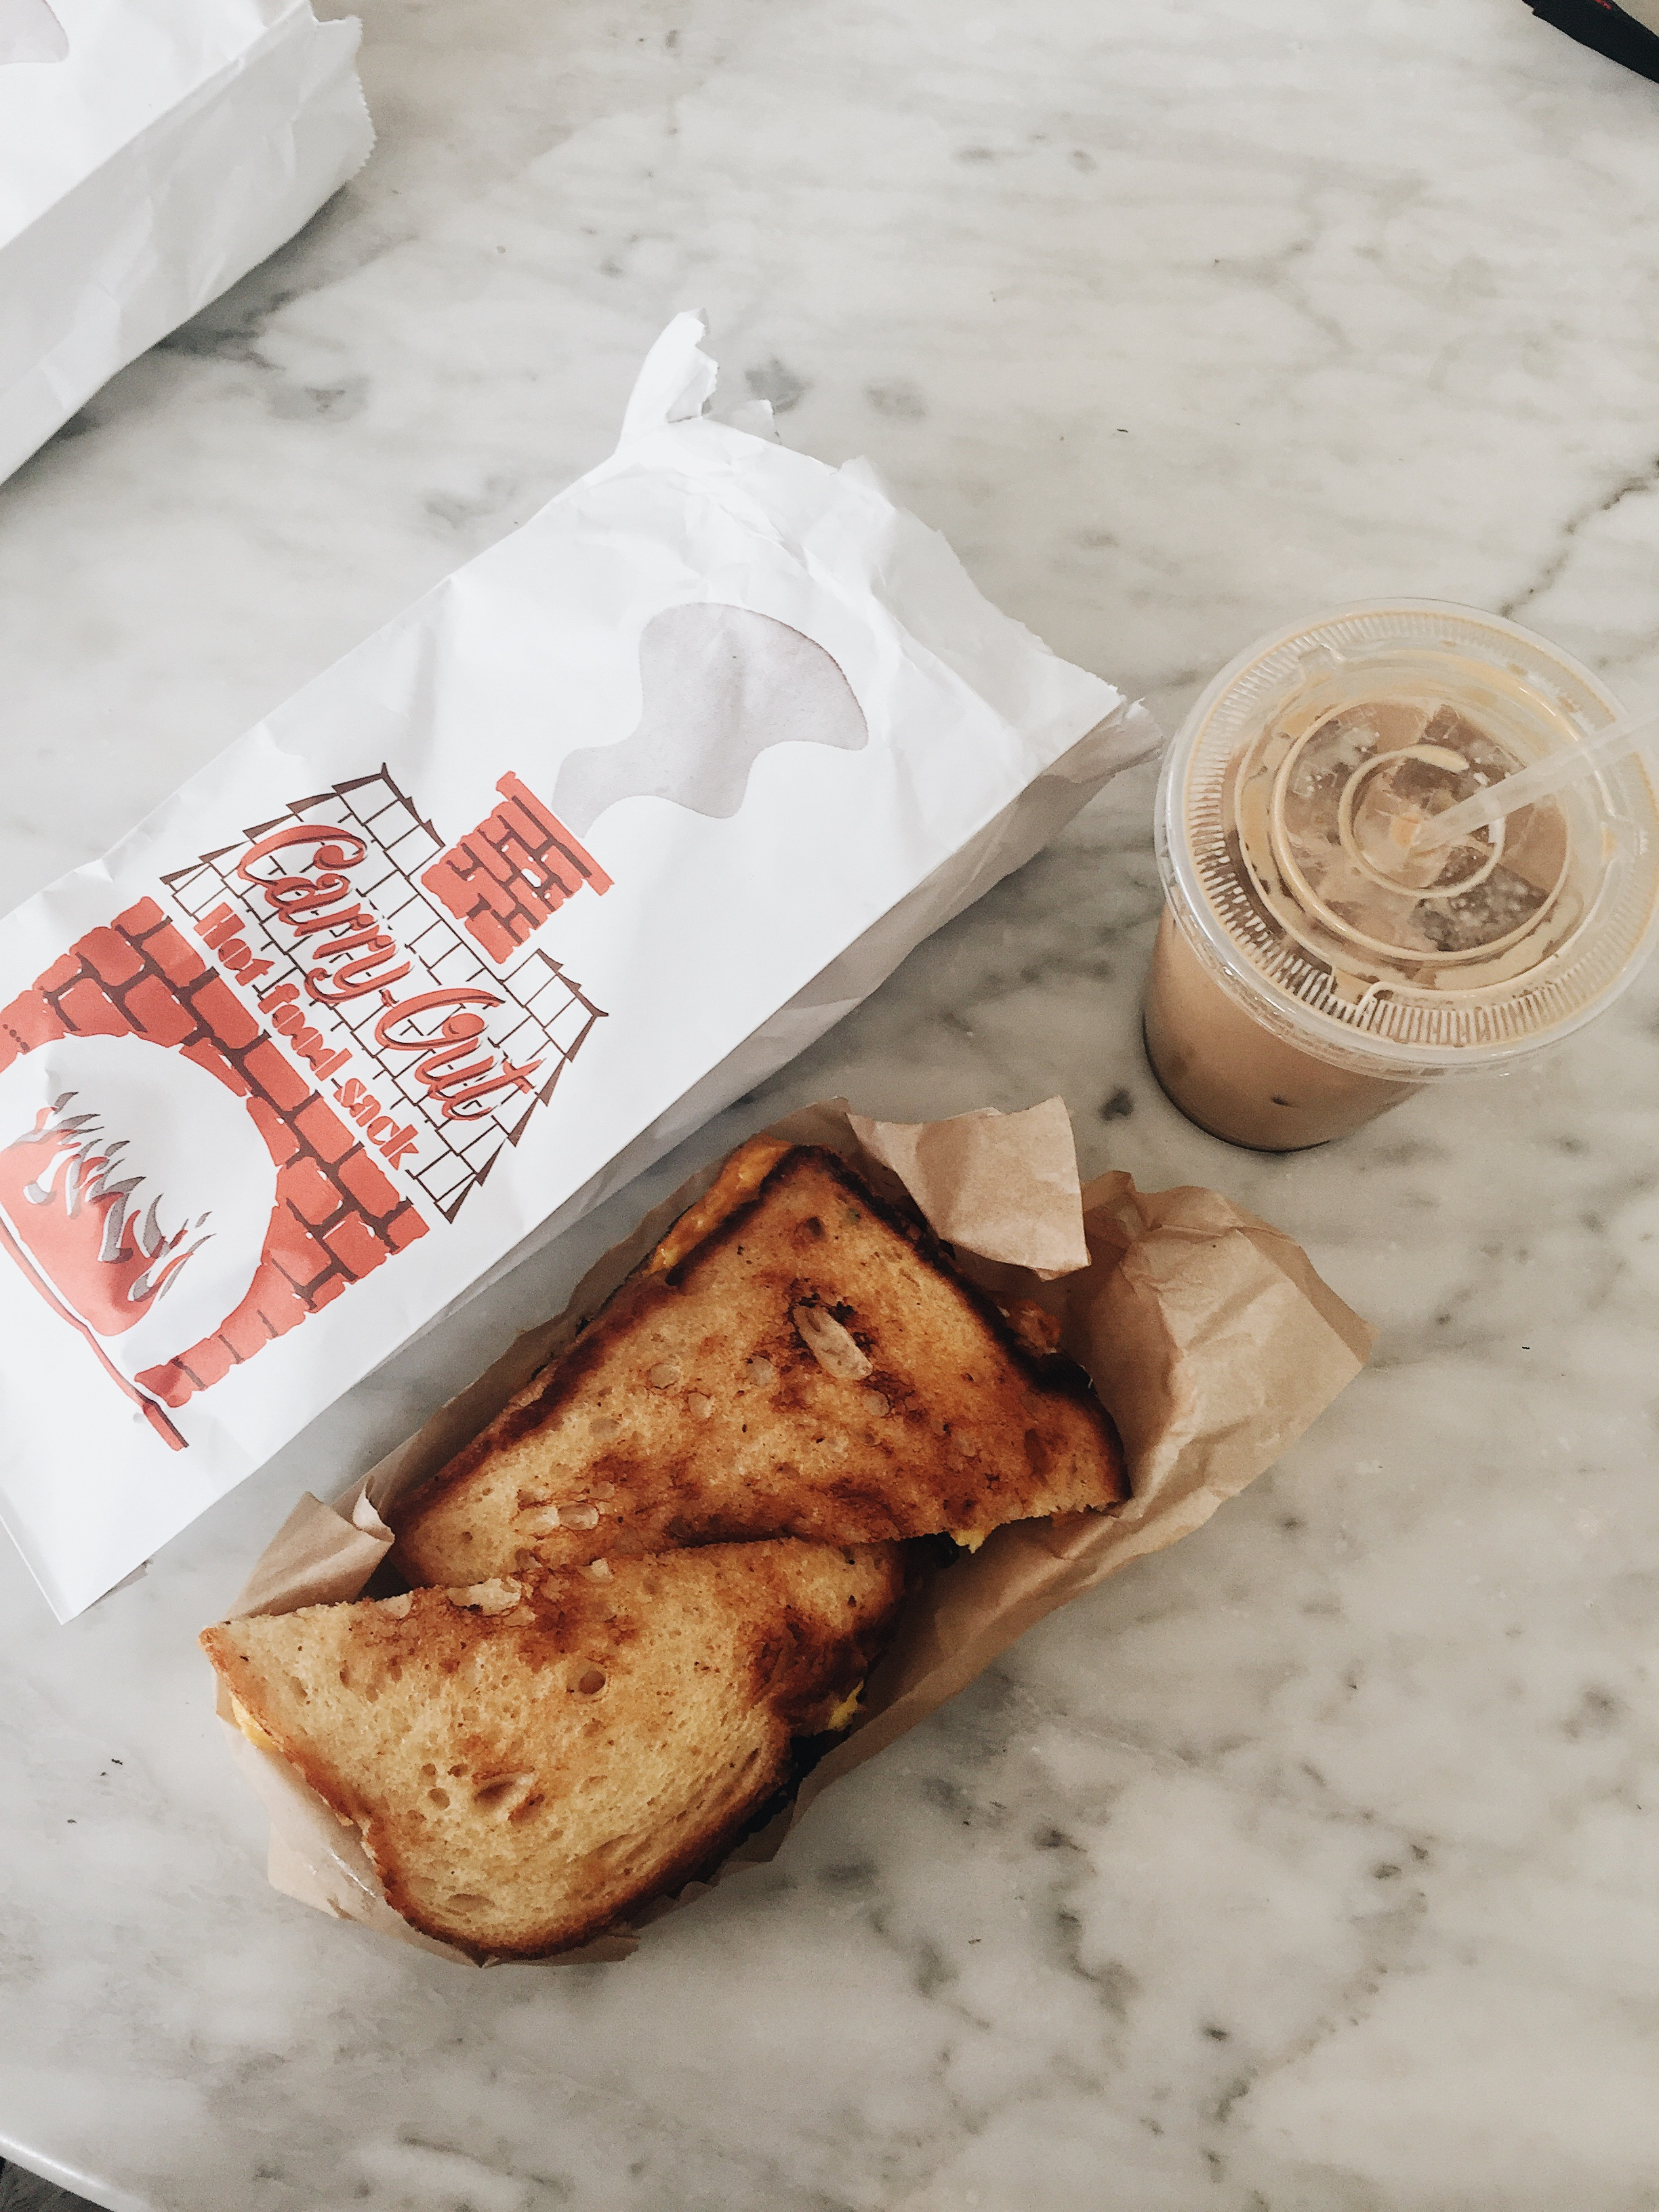 Breakfast - Breakfast sandwich with bacon and an iced cafe latte.